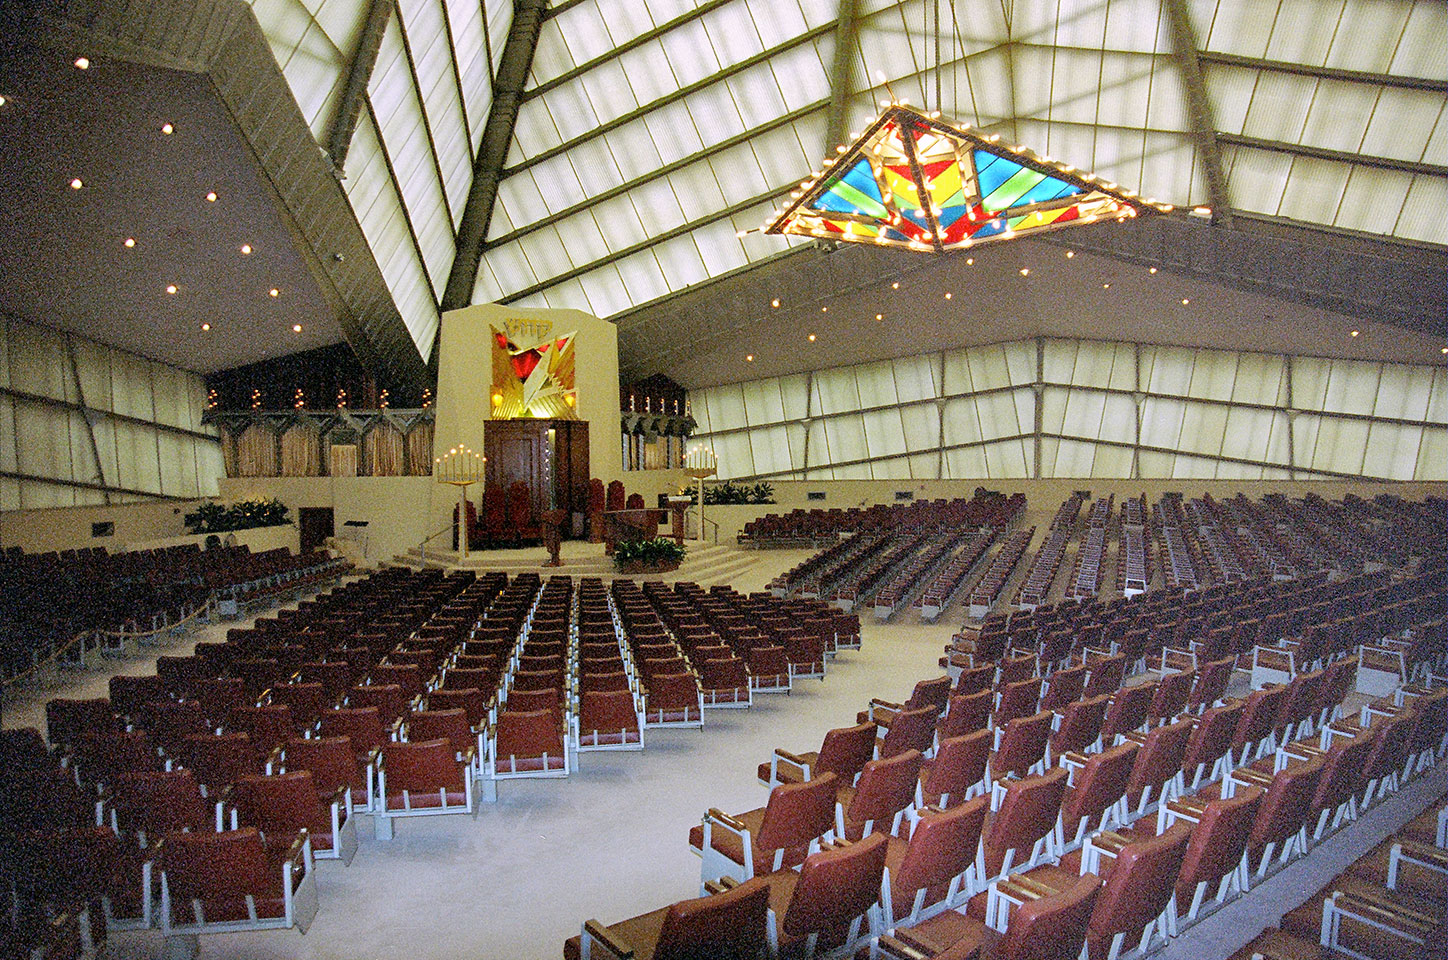 Craigslist Com Phoenix >> Sacred Spaces – The Houses of Worship Designed by Frank Lloyd Wright – Designed by Frank Lloyd ...